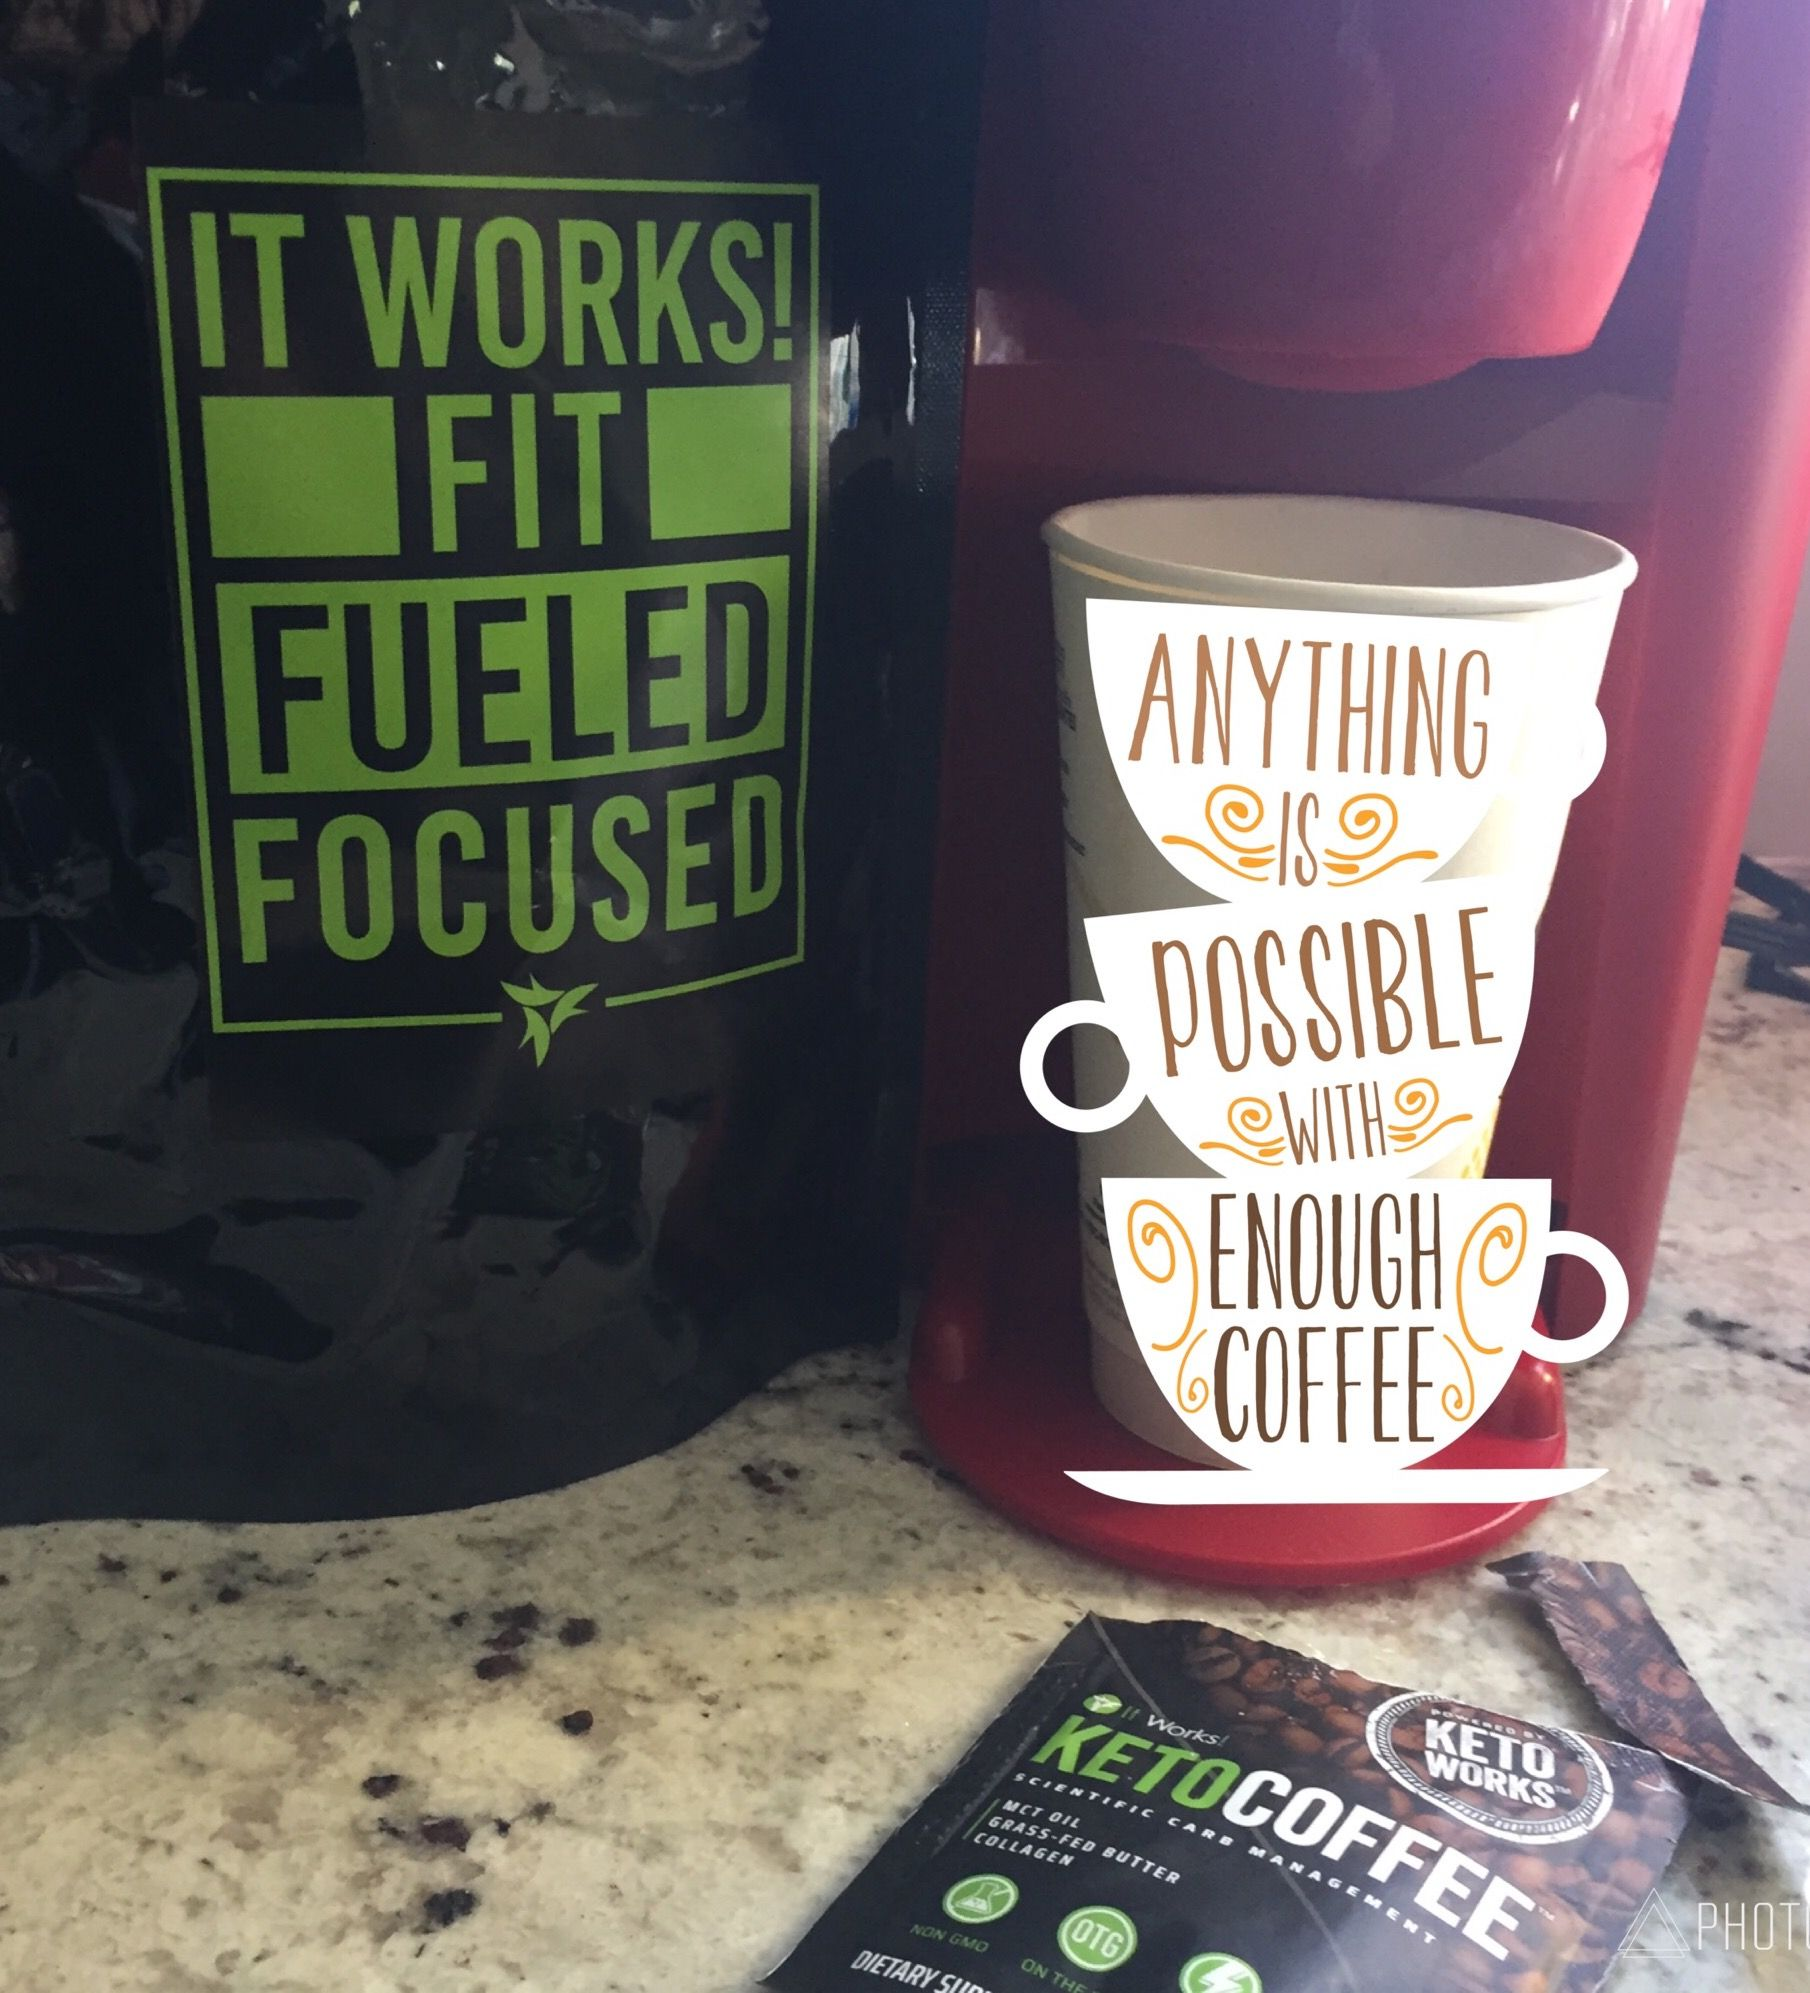 Begin Your Keto Day FitFueledFocused With ItWorks Coffee